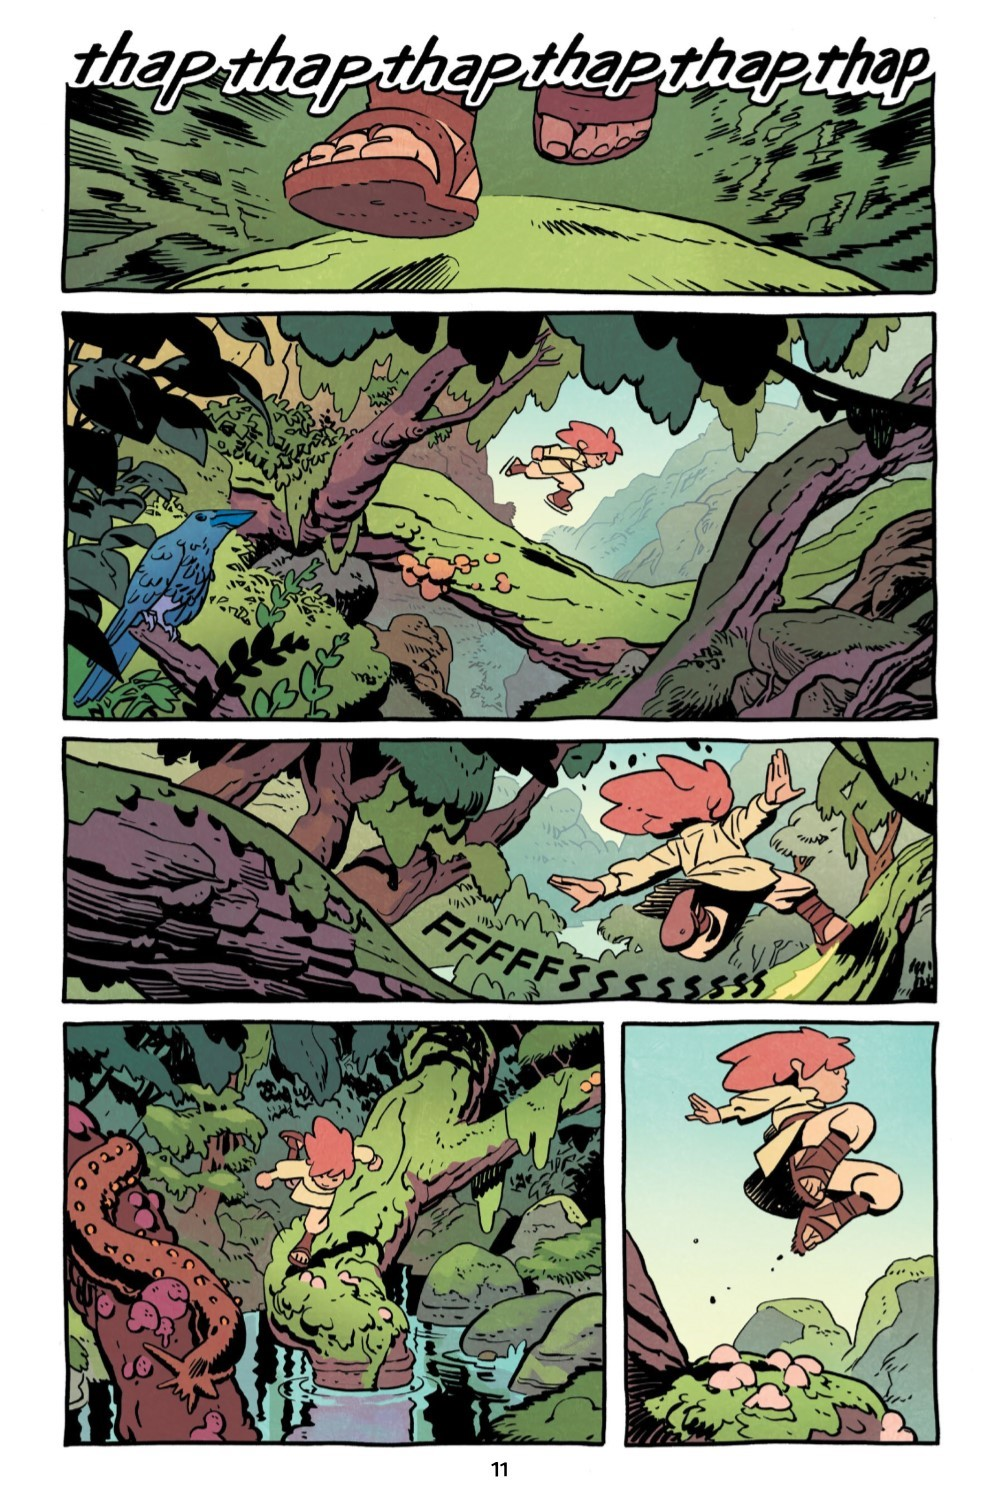 JONNA-V1-REFERENCE-012 ComicList Previews: JONNA AND THE UNPOSSIBLE MONSTER VOLUME 1 TP